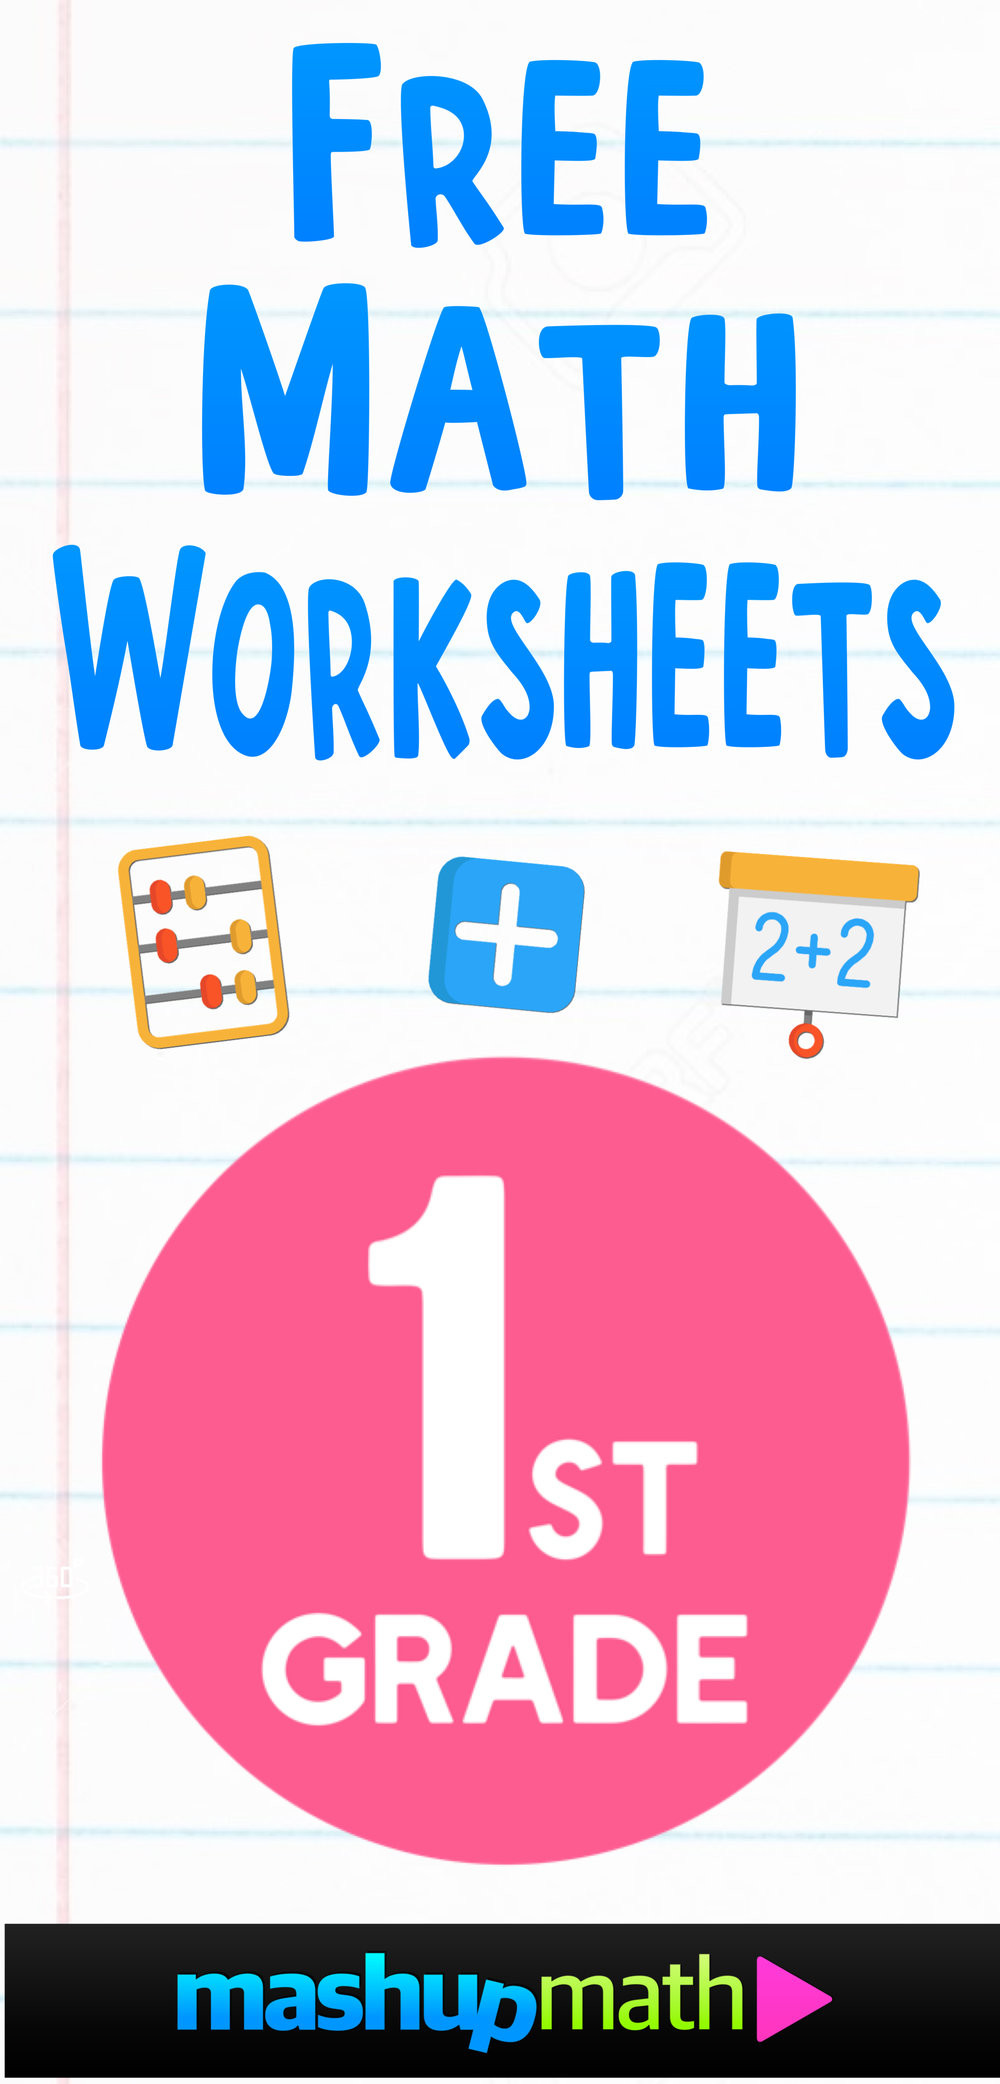 Missing Addends Worksheets 1st Grade Free 1st Grade Math Worksheets — Mashup Math